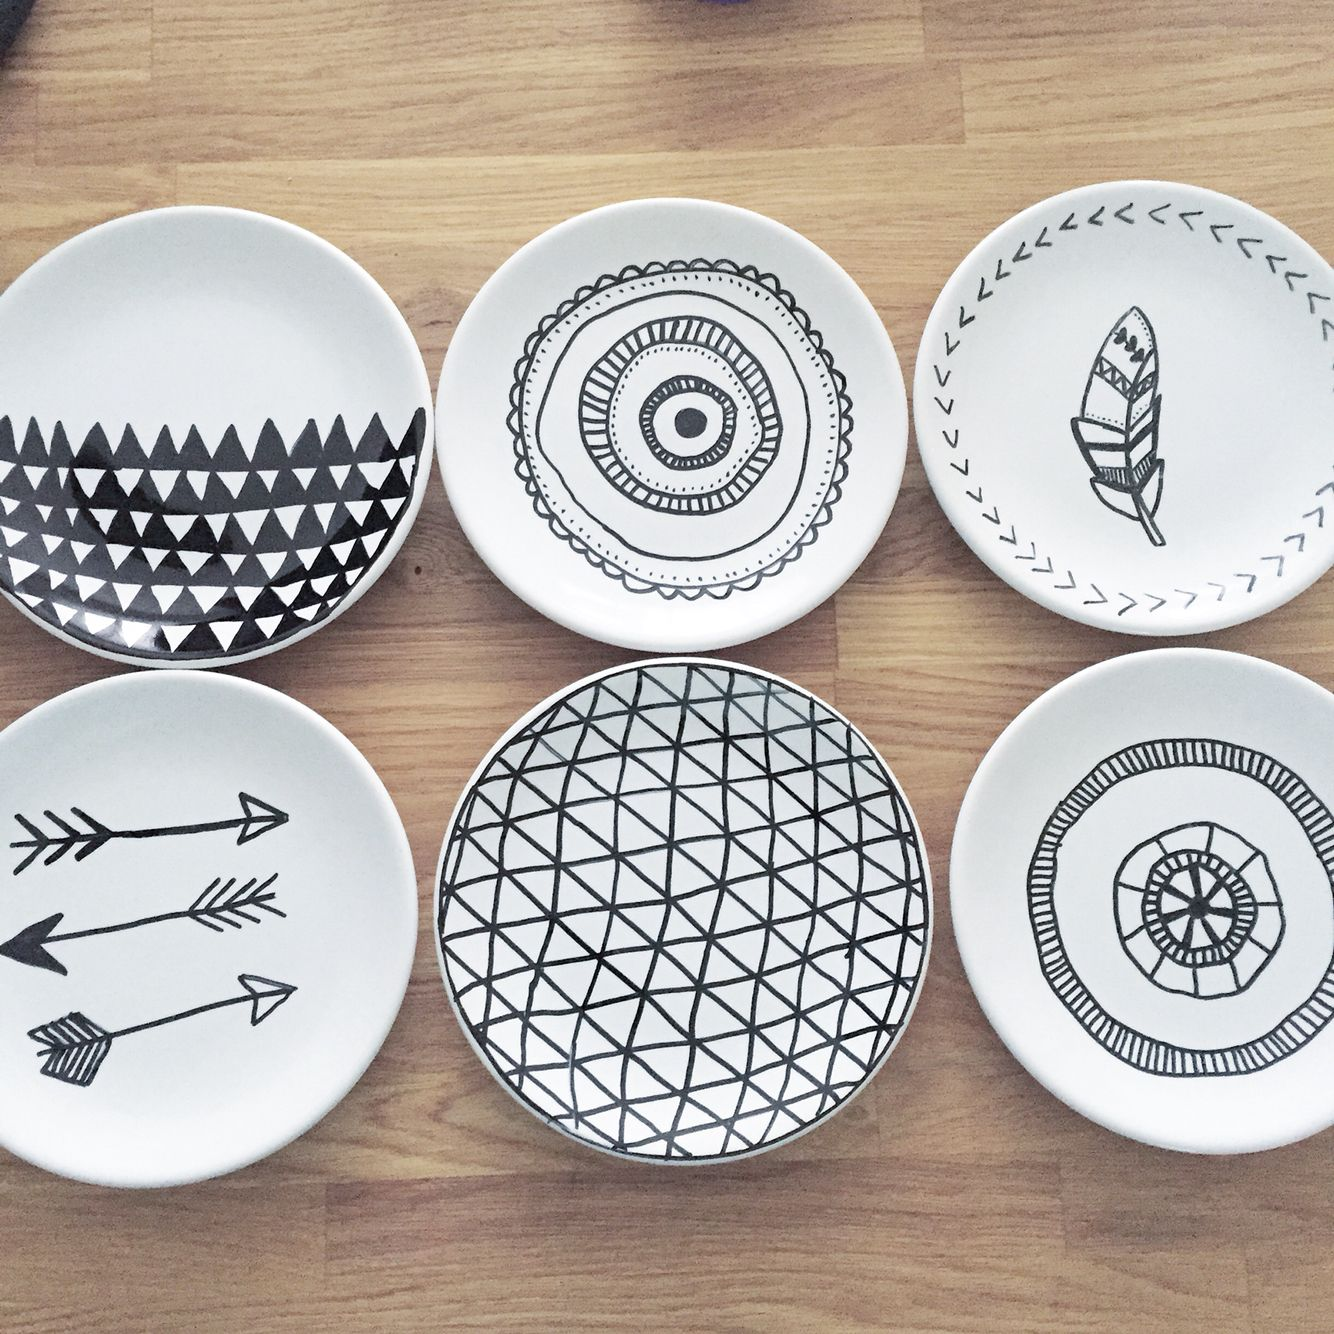 Diy porcelain plates idee n pinterest porcelain for Diy ceramic plates